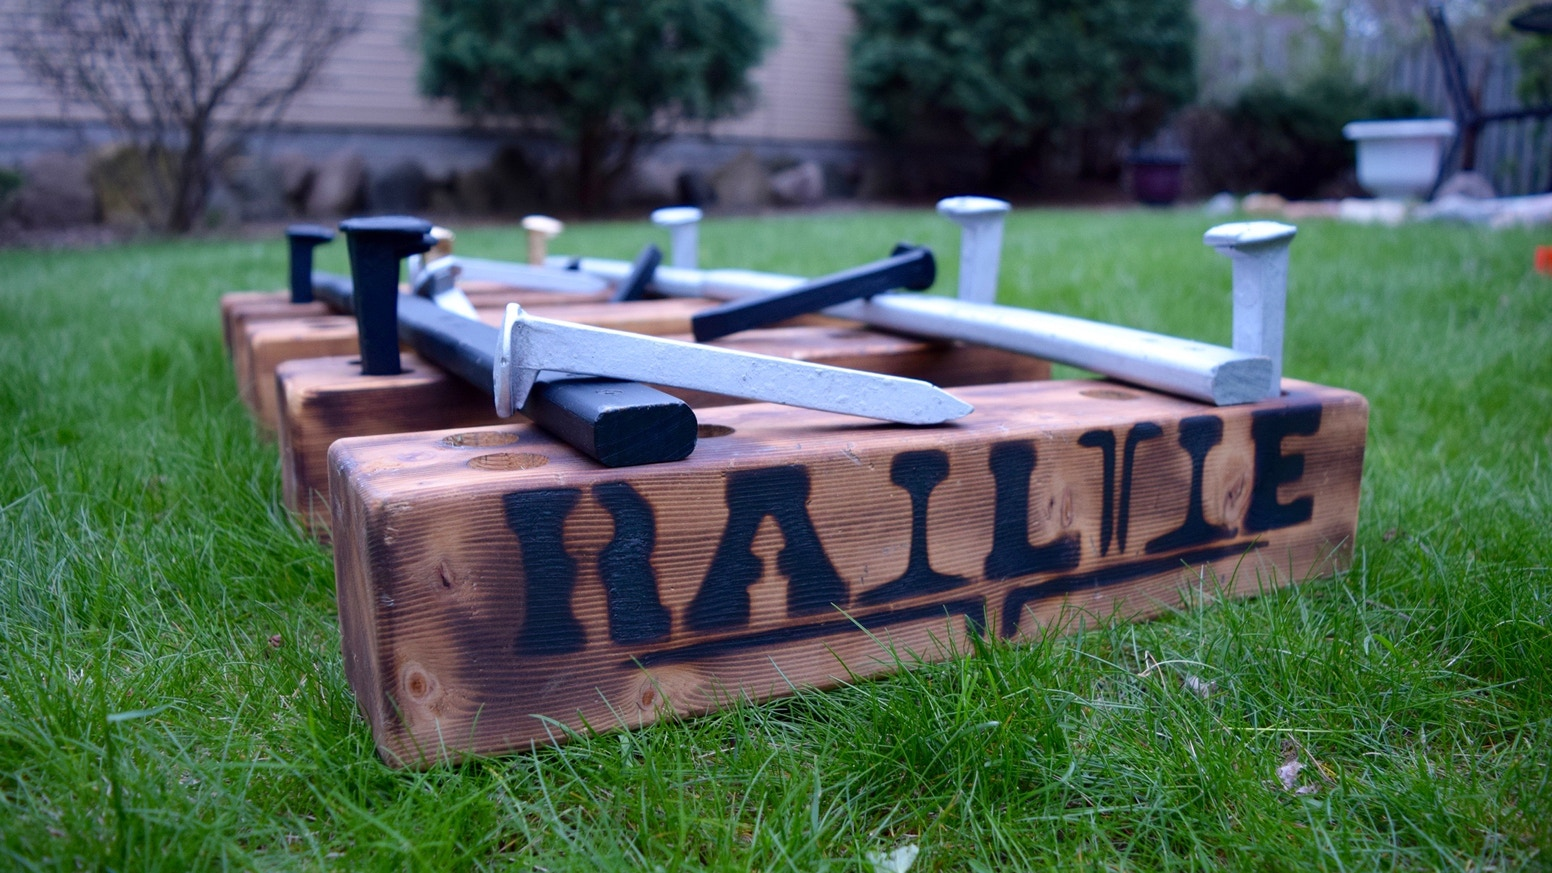 RailTie: The Newest Lawn Game Tieing Friends, Family, And The Great Outdoors Together. This Is What Life's All About.